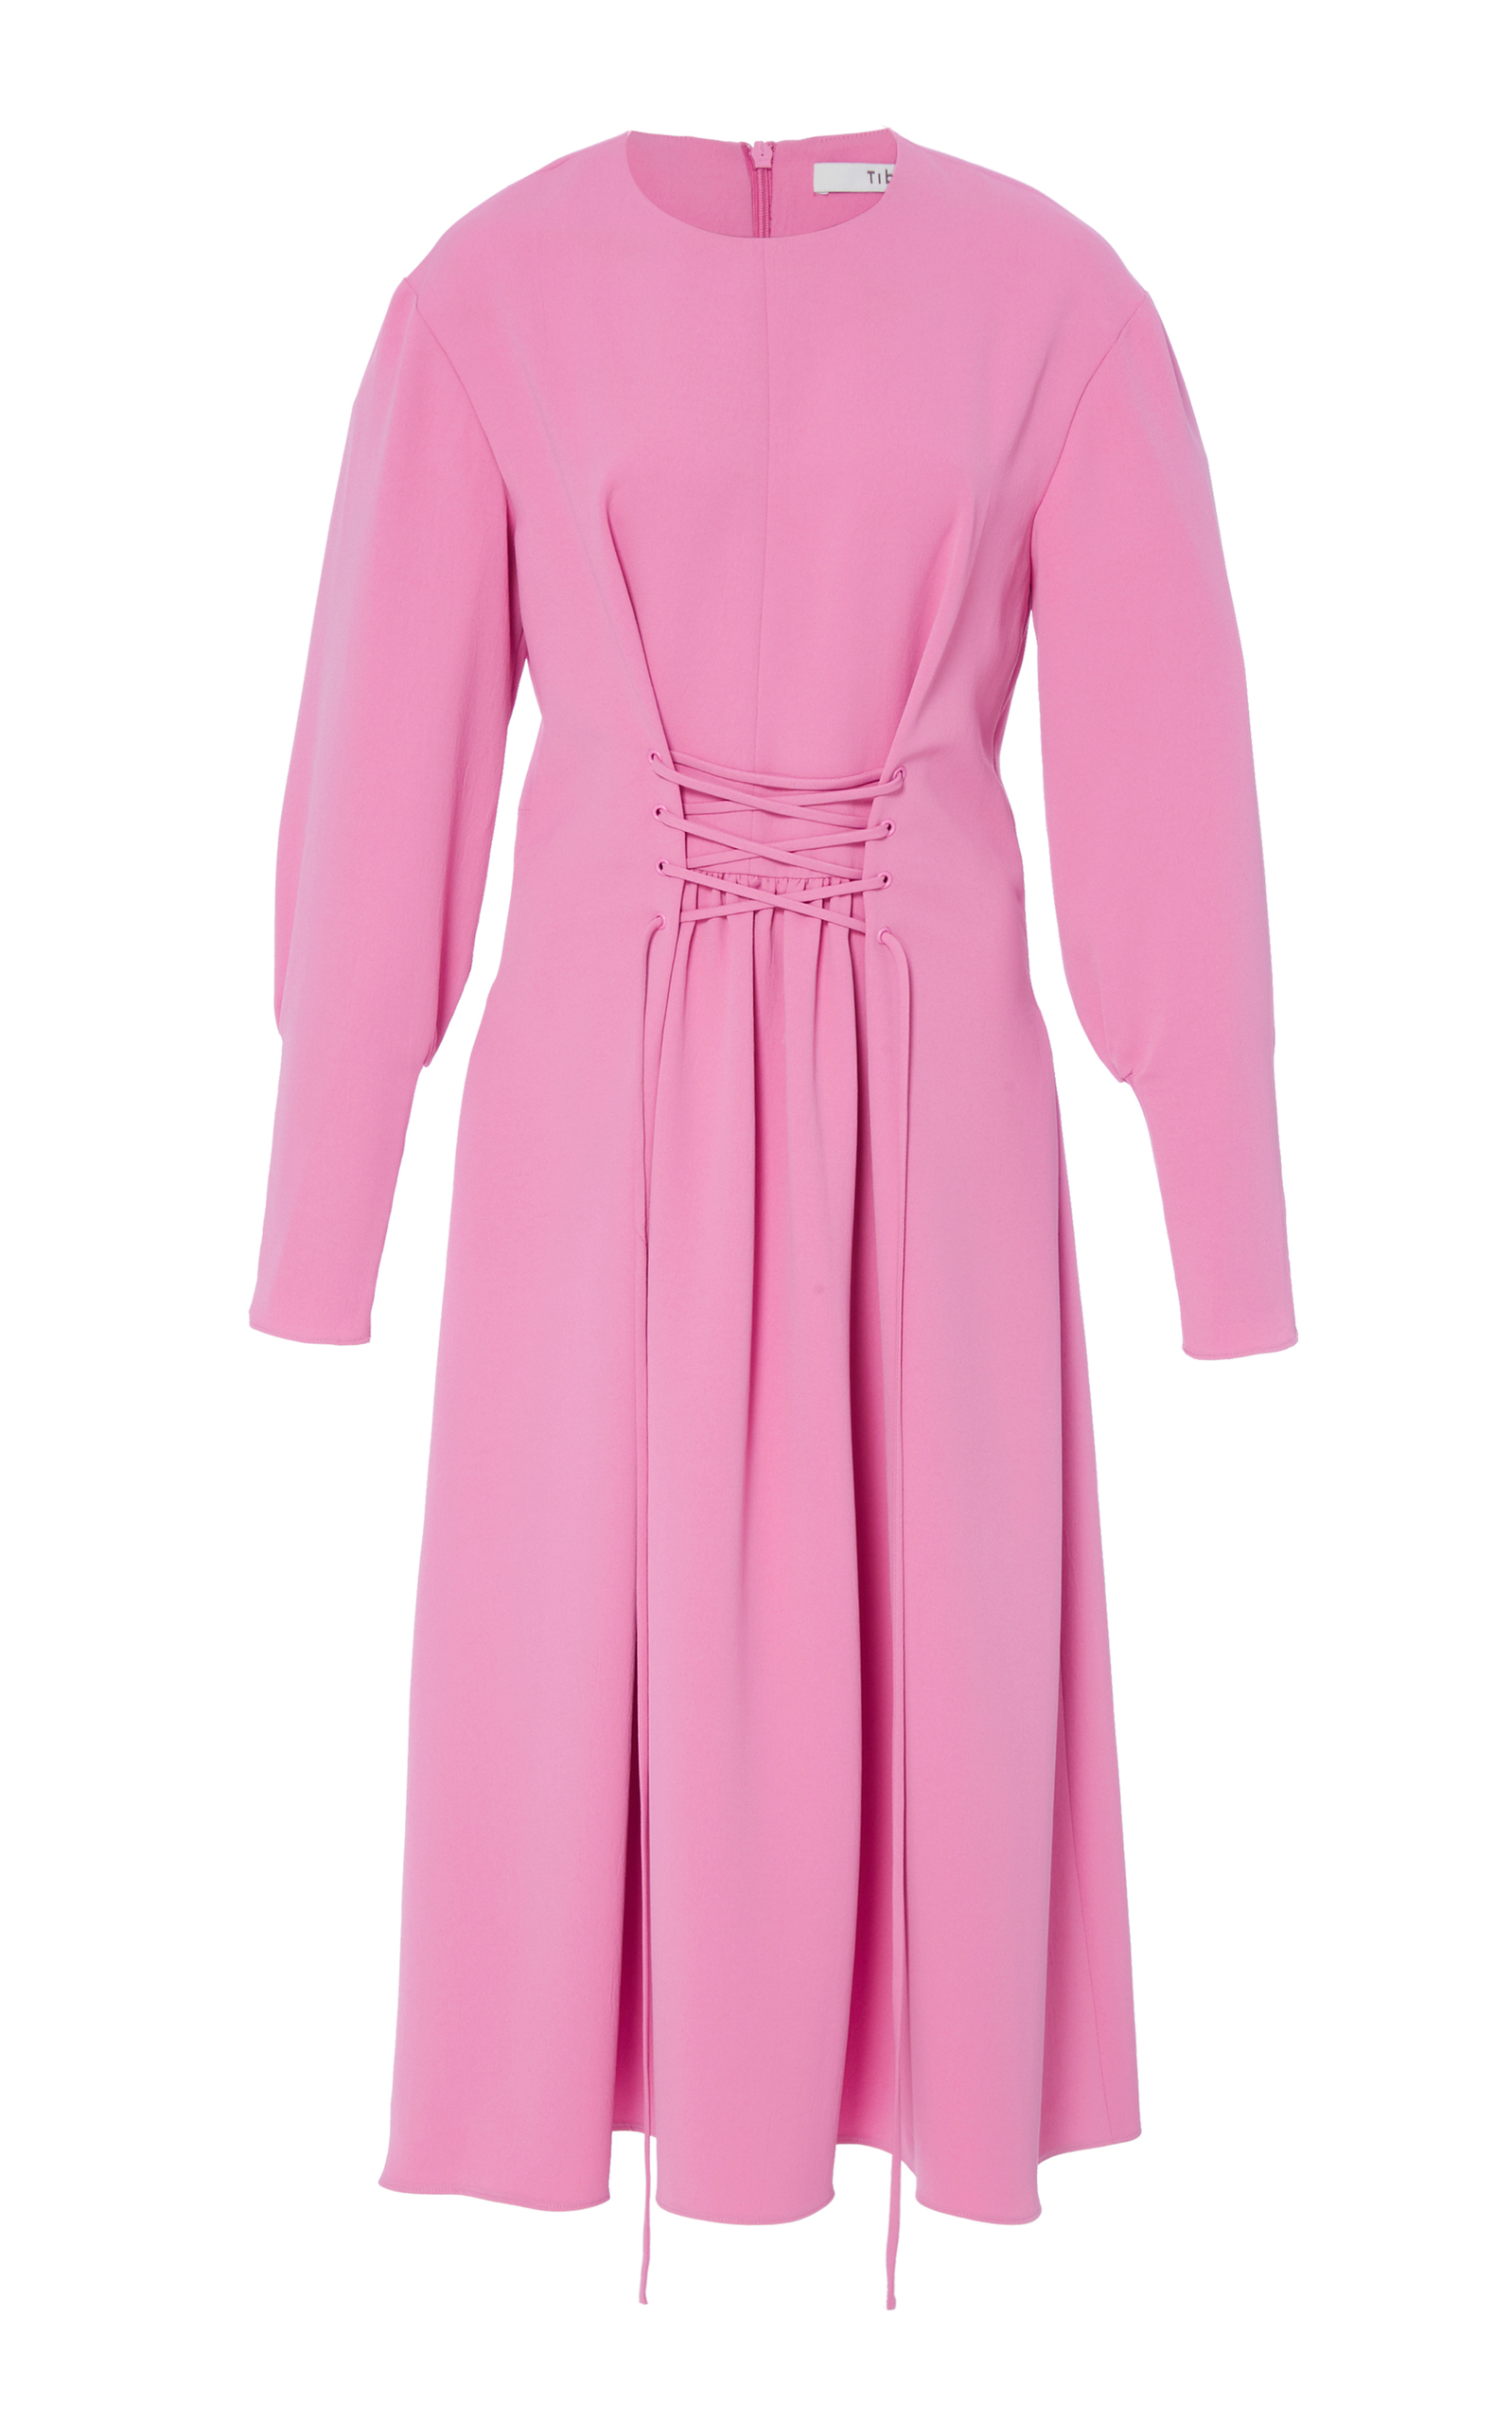 TWILL DRESS WITH LACE-UP FRONT